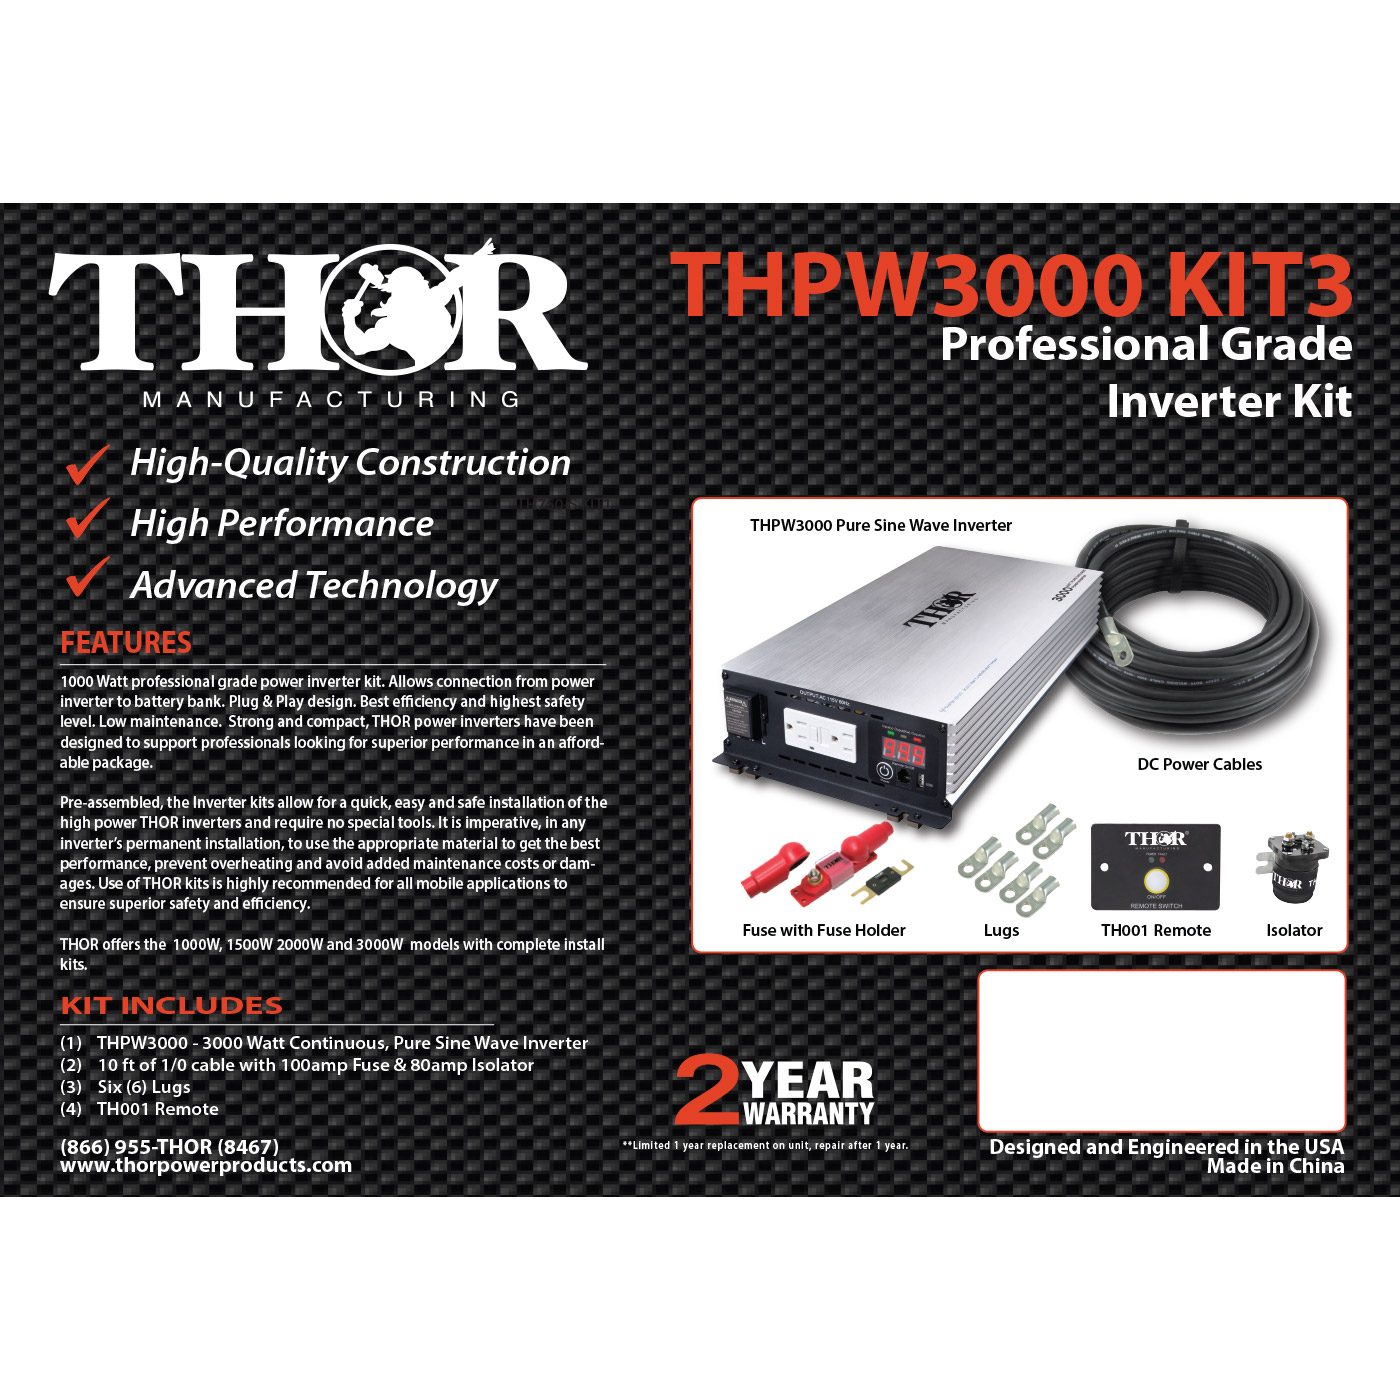 thpw3000kit3-label